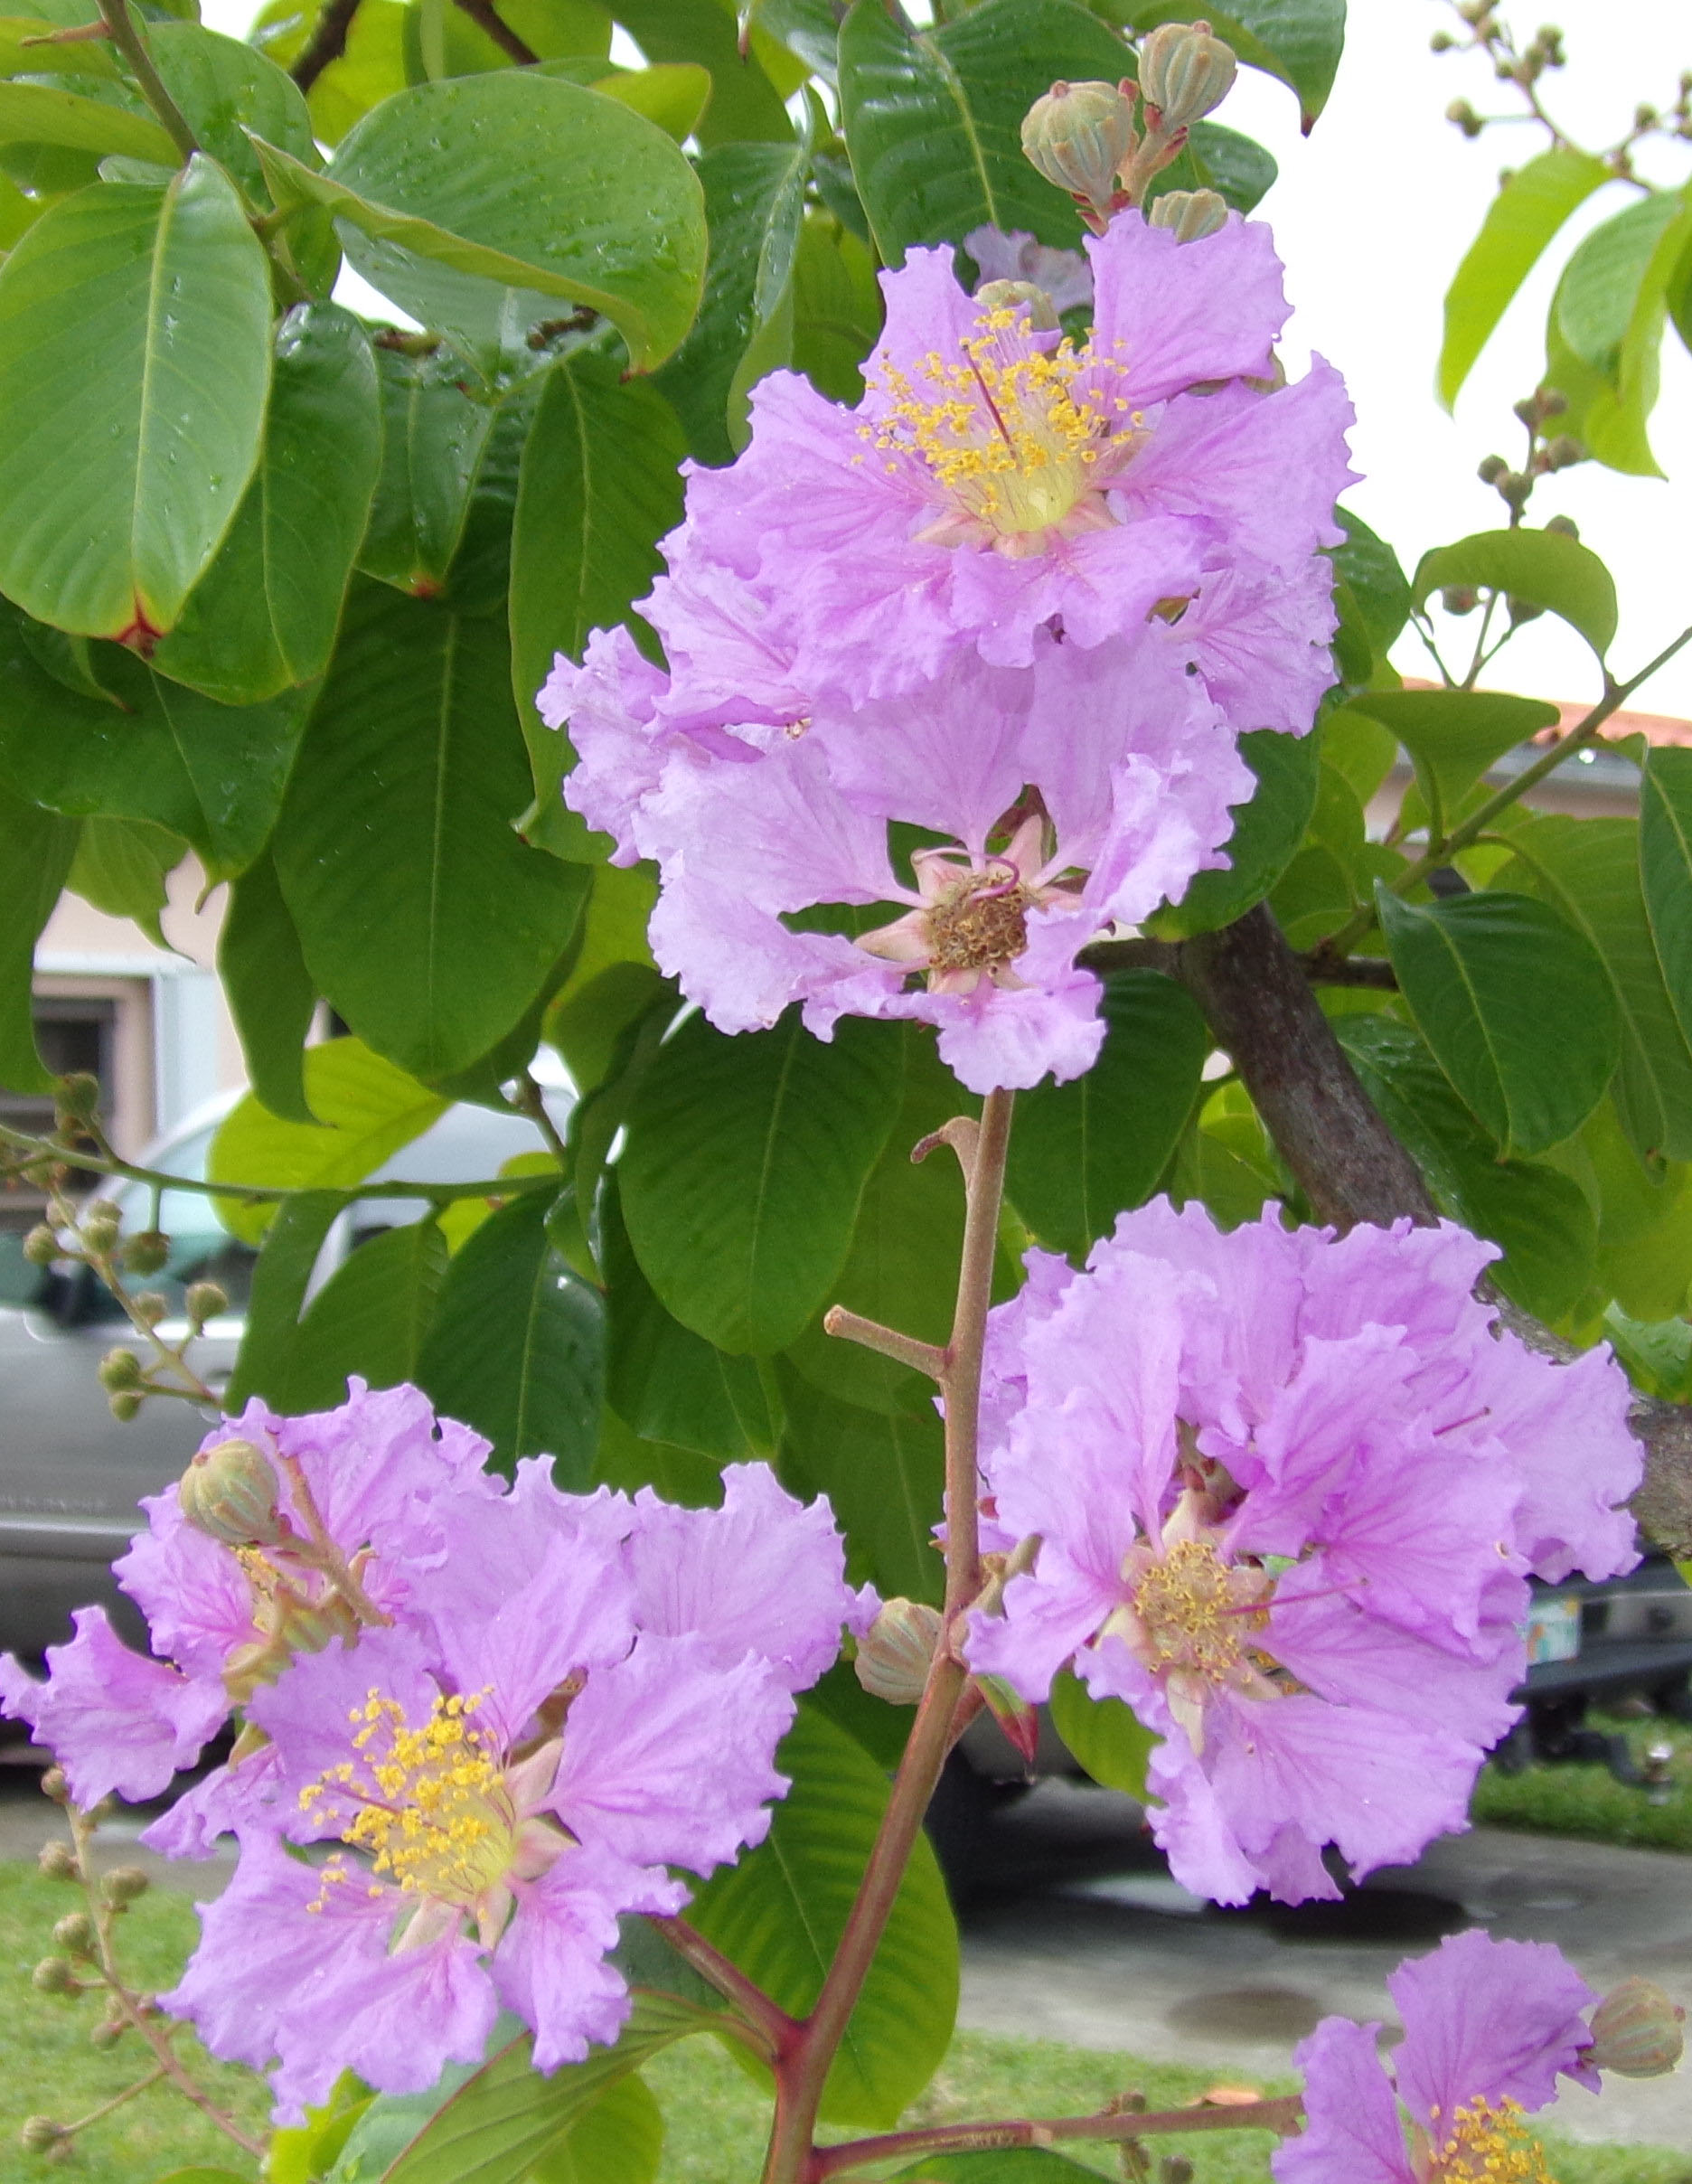 Miamis flowering trees of june living in the blue ridge mountains miamis flowering trees of june living in the blue ridge mountains of north carolina a blog izmirmasajfo